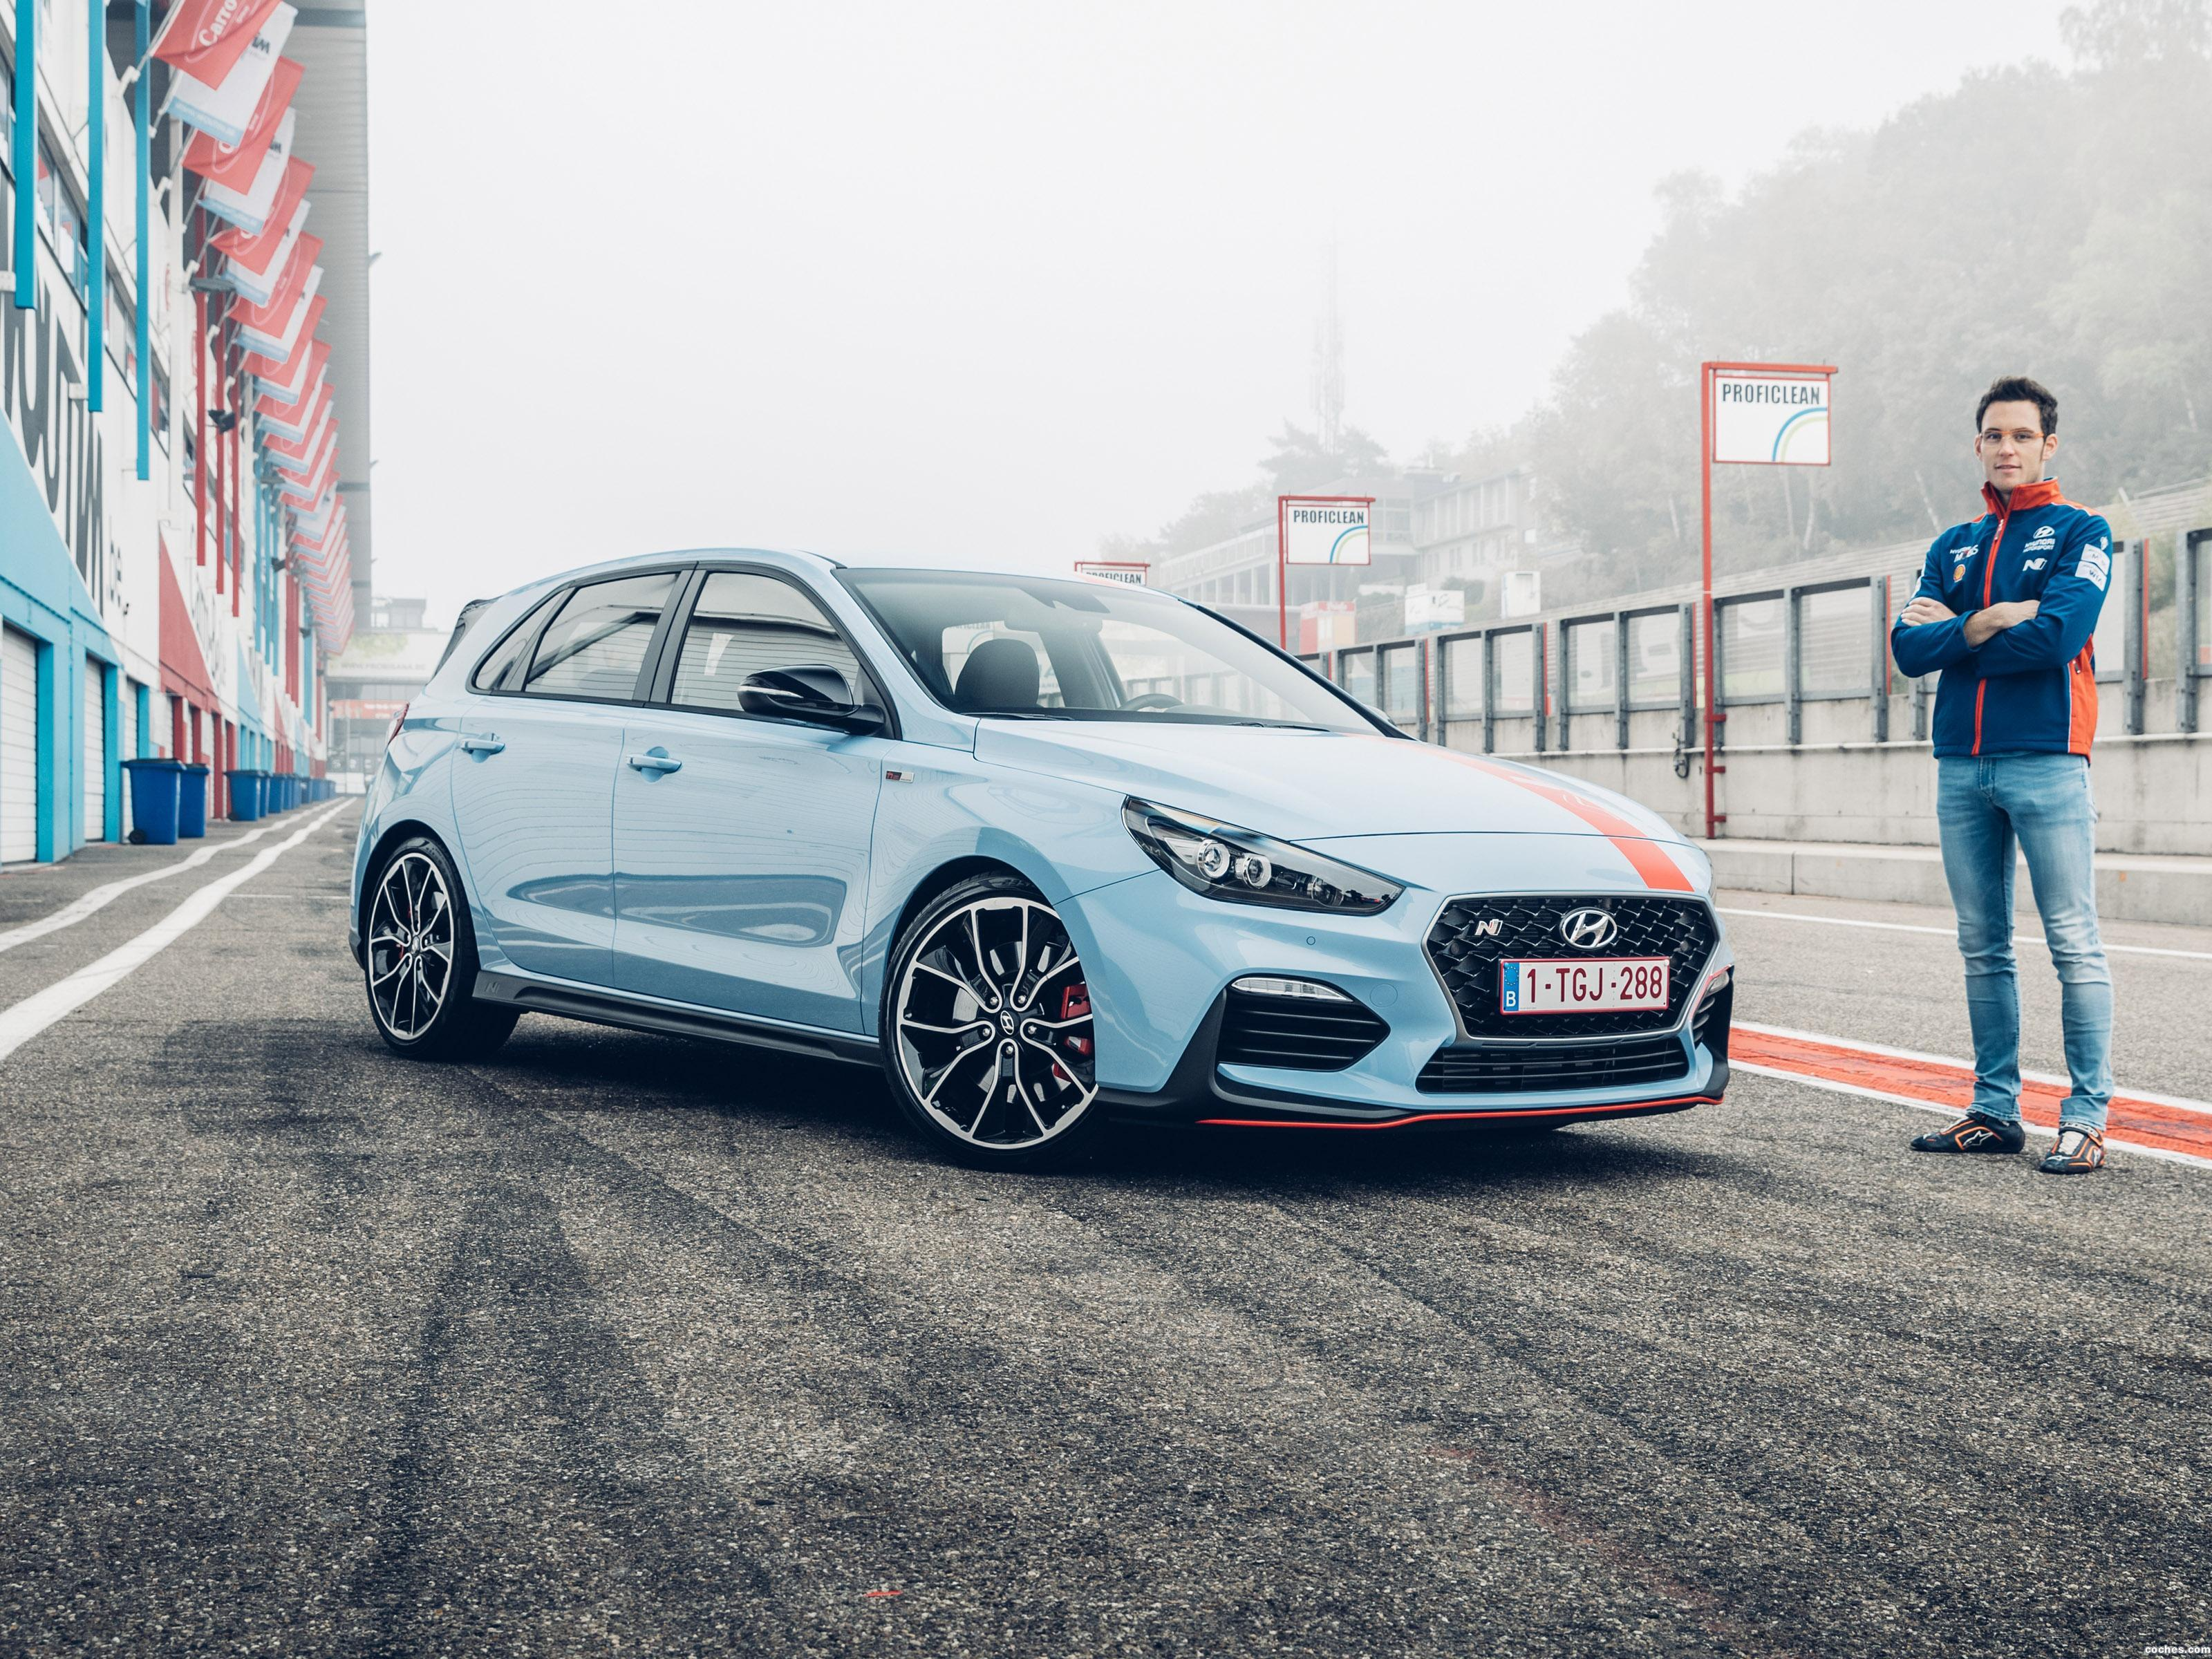 Foto 0 de Hyundai i30 N Thierry Neuville Limited Edition 2017